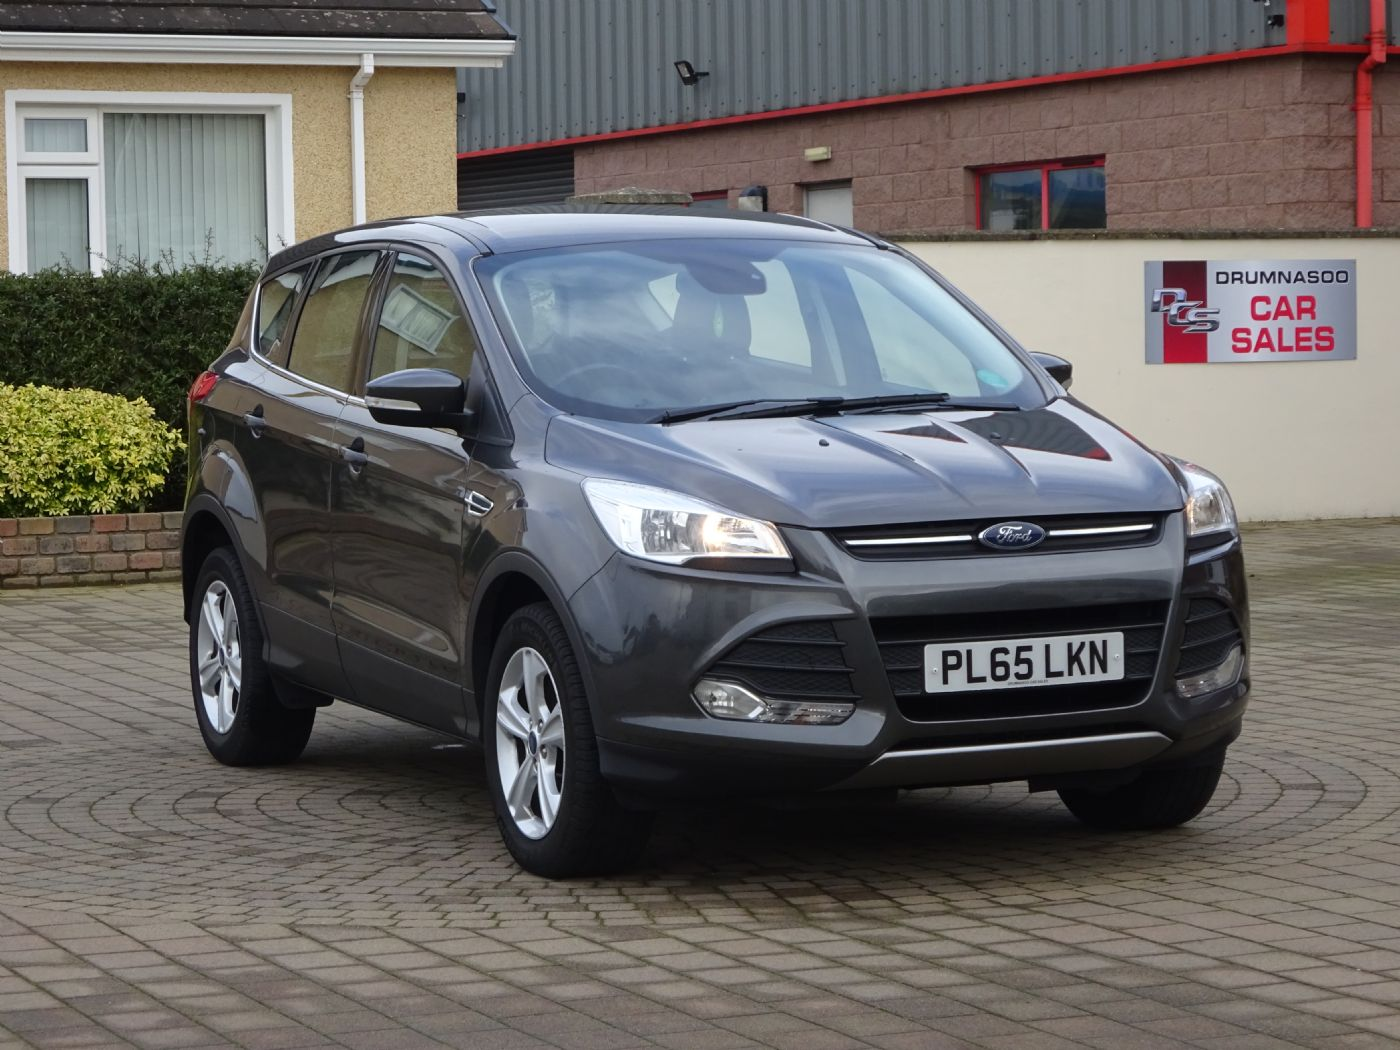 Ford Kuga Zetec 2.0 TDCi 150  Cruise control / Rear parking sensors